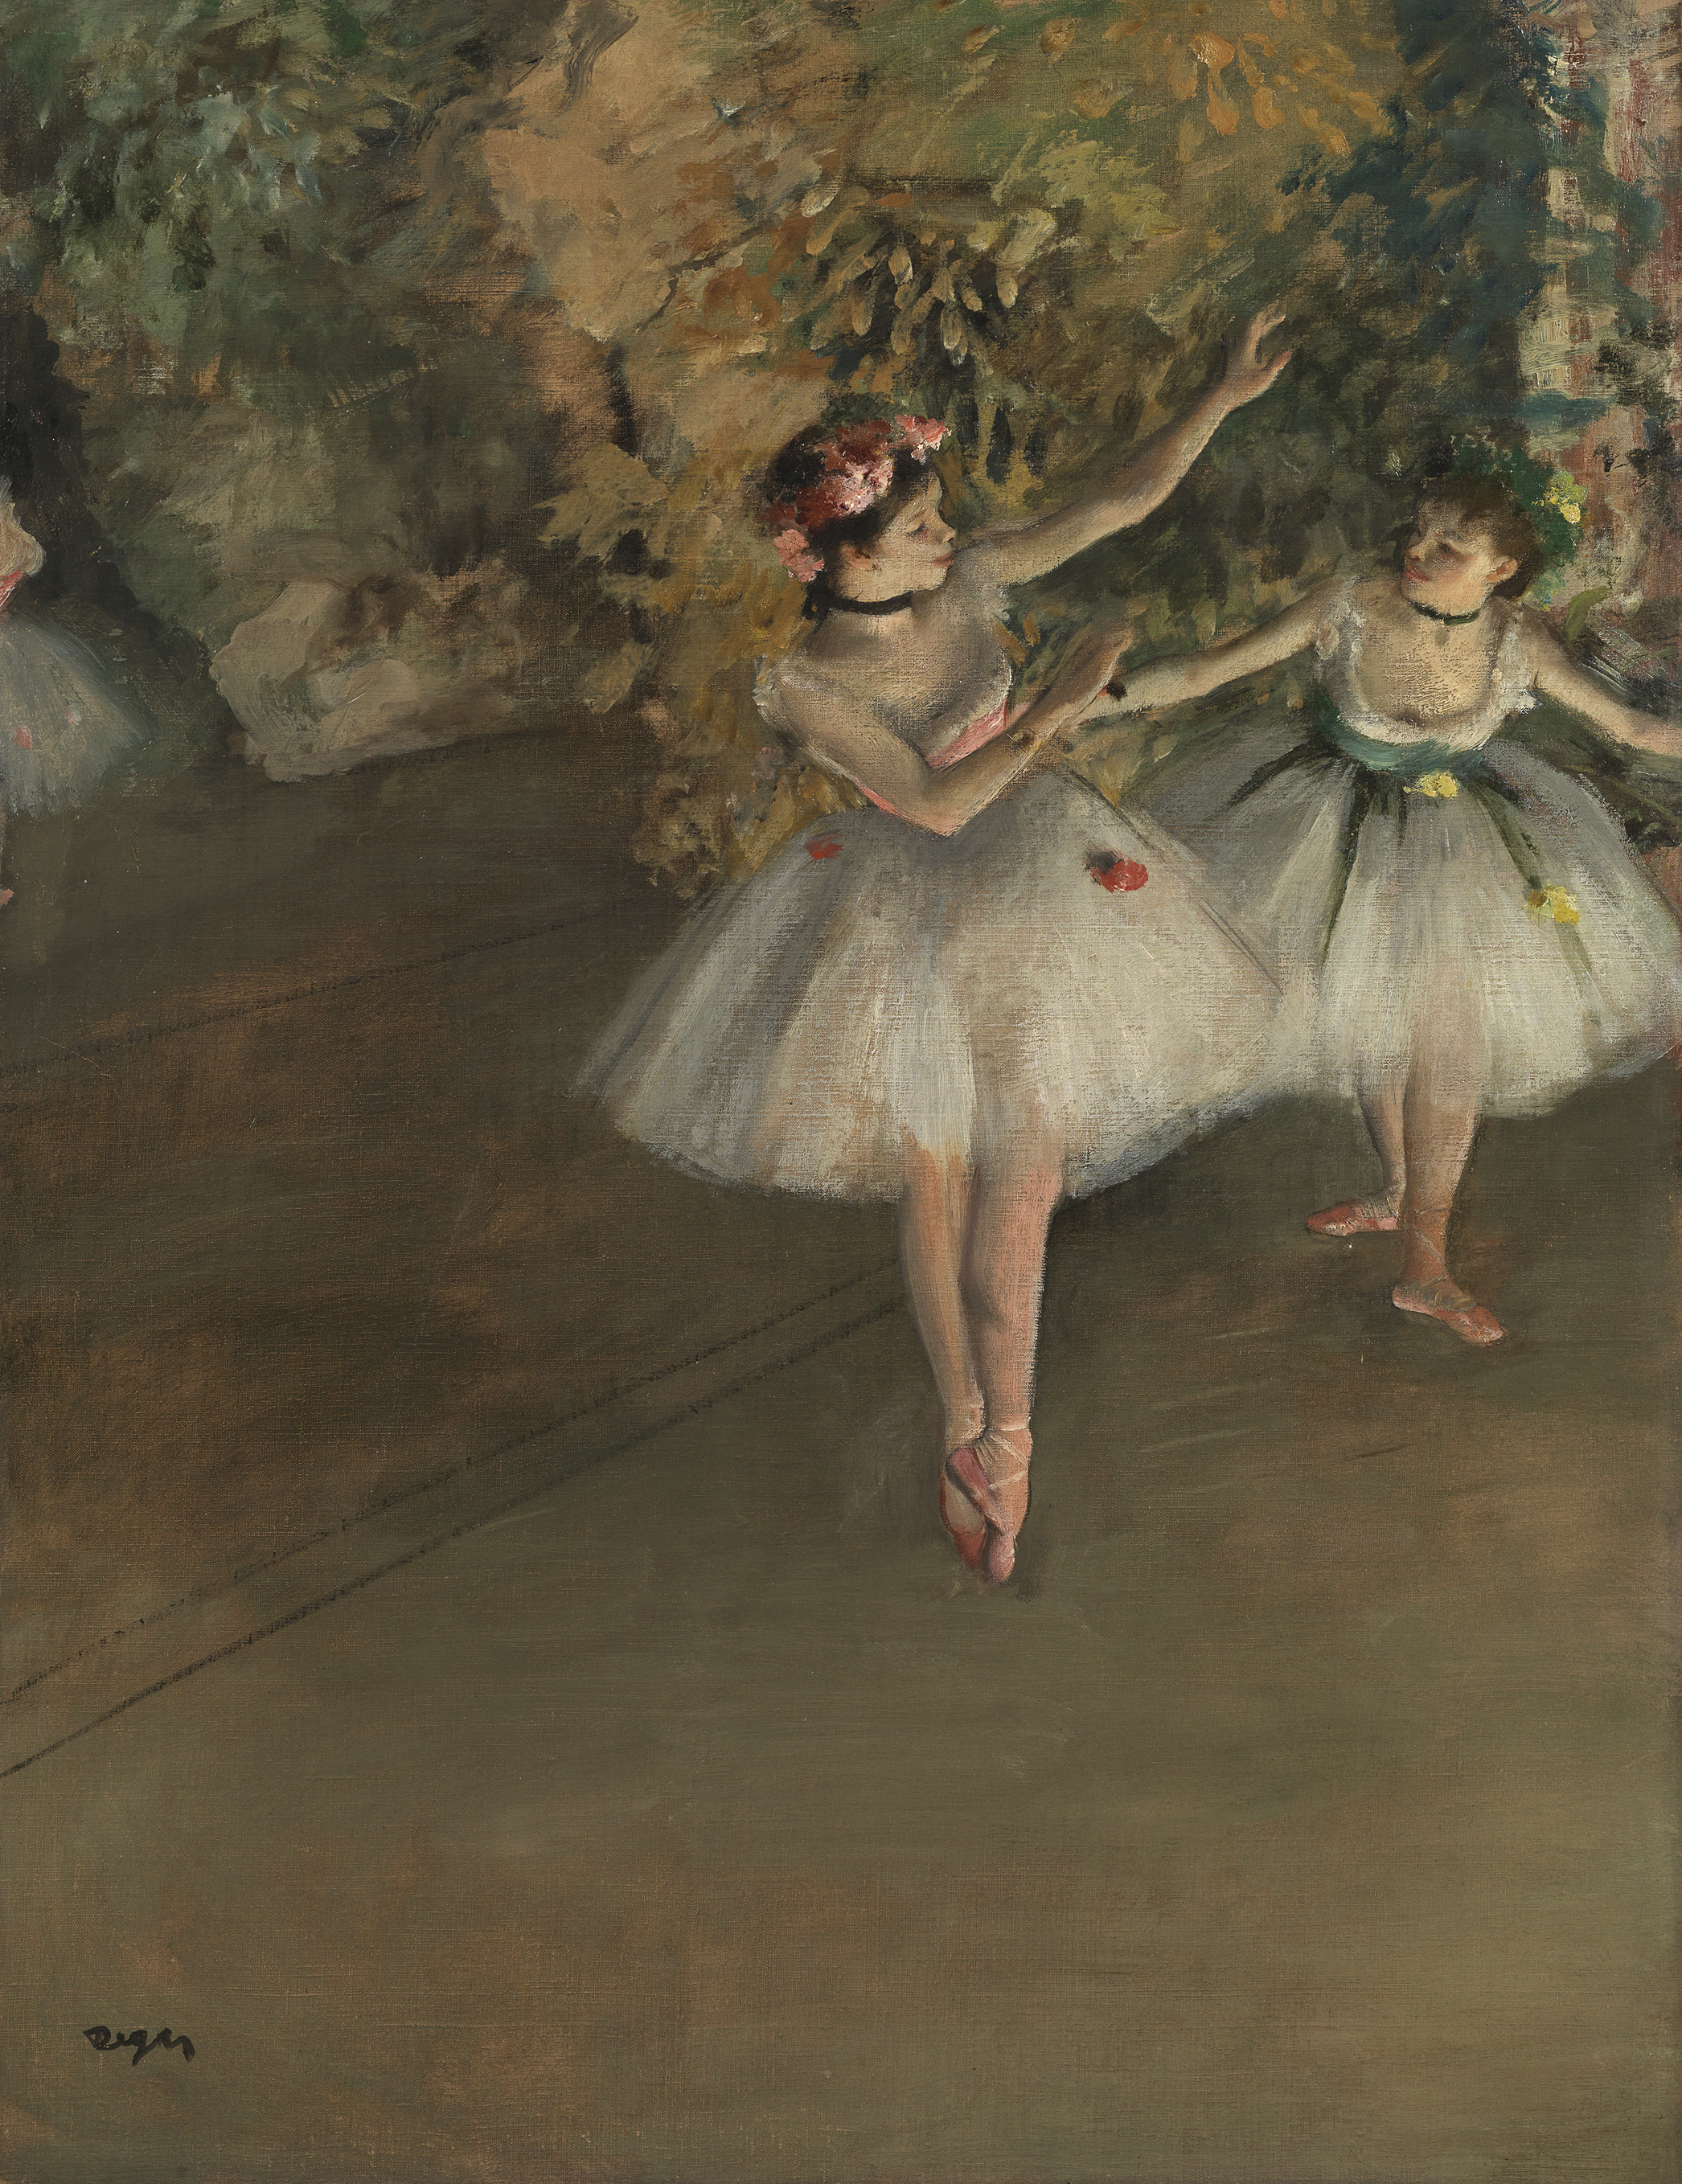 Two Dancers on a Stage - Hilaire-Germain-Edgar Degas, 1874